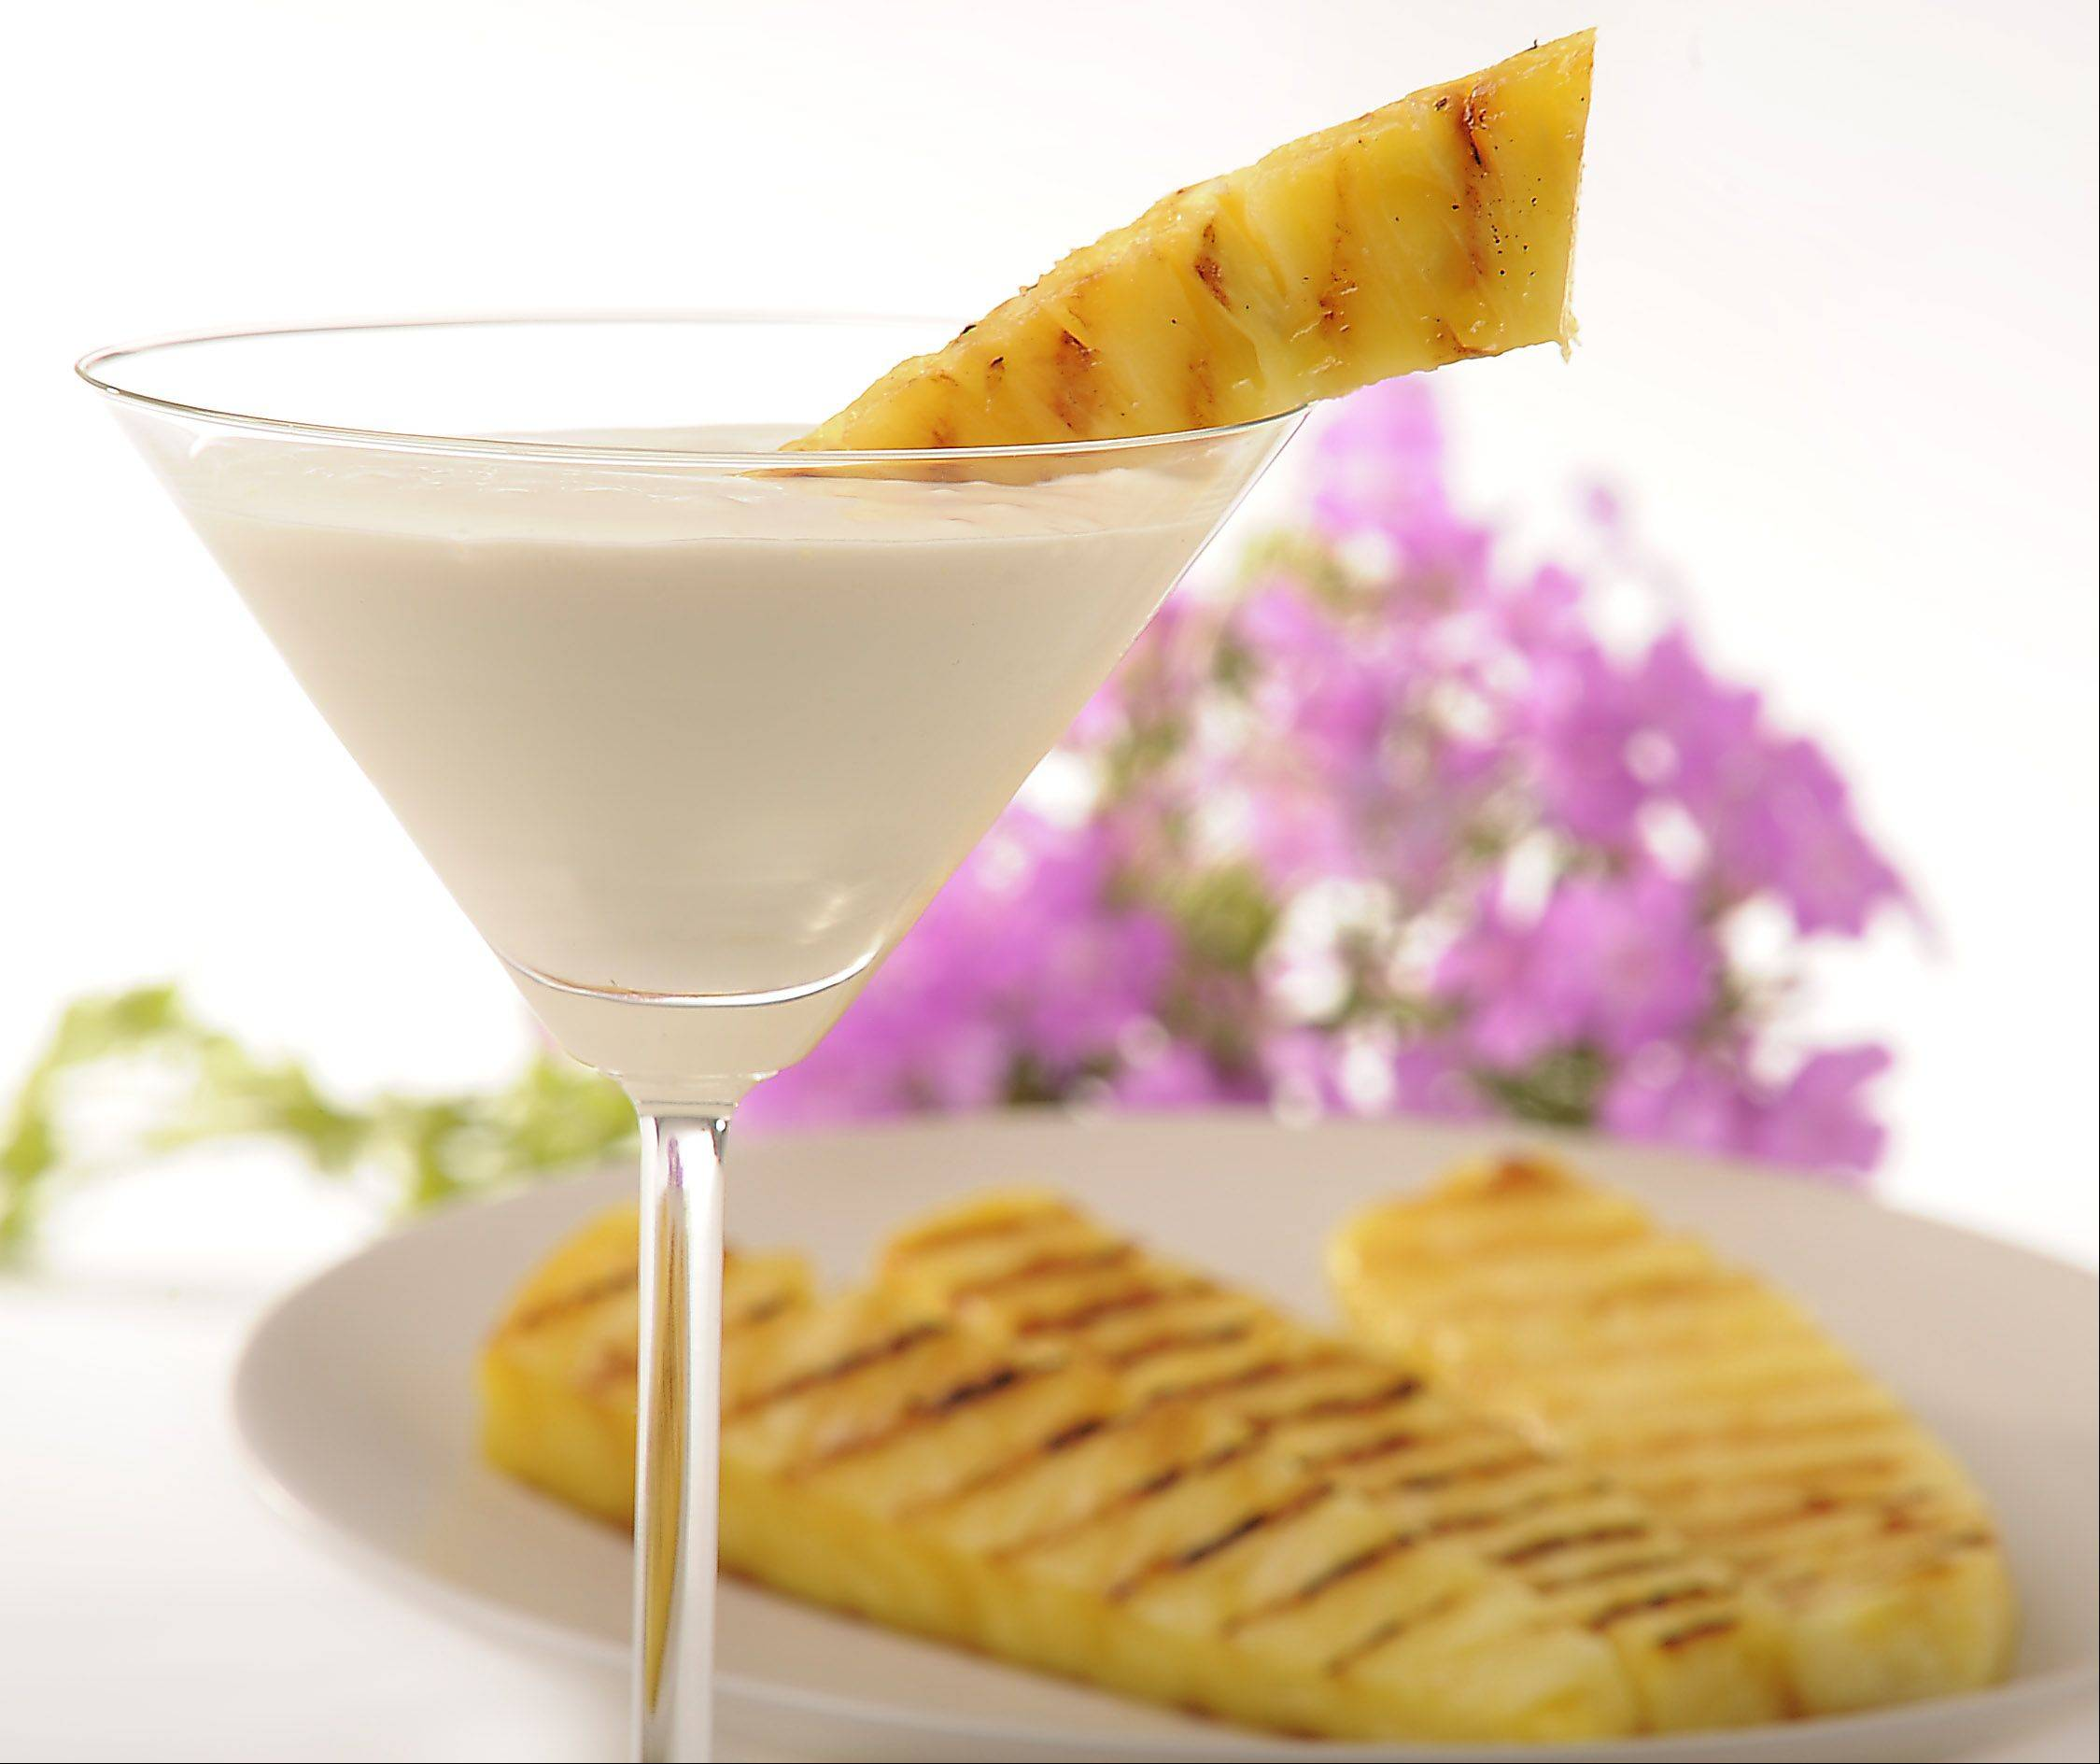 Grilled Pineapple with Orange Dipping Sauce